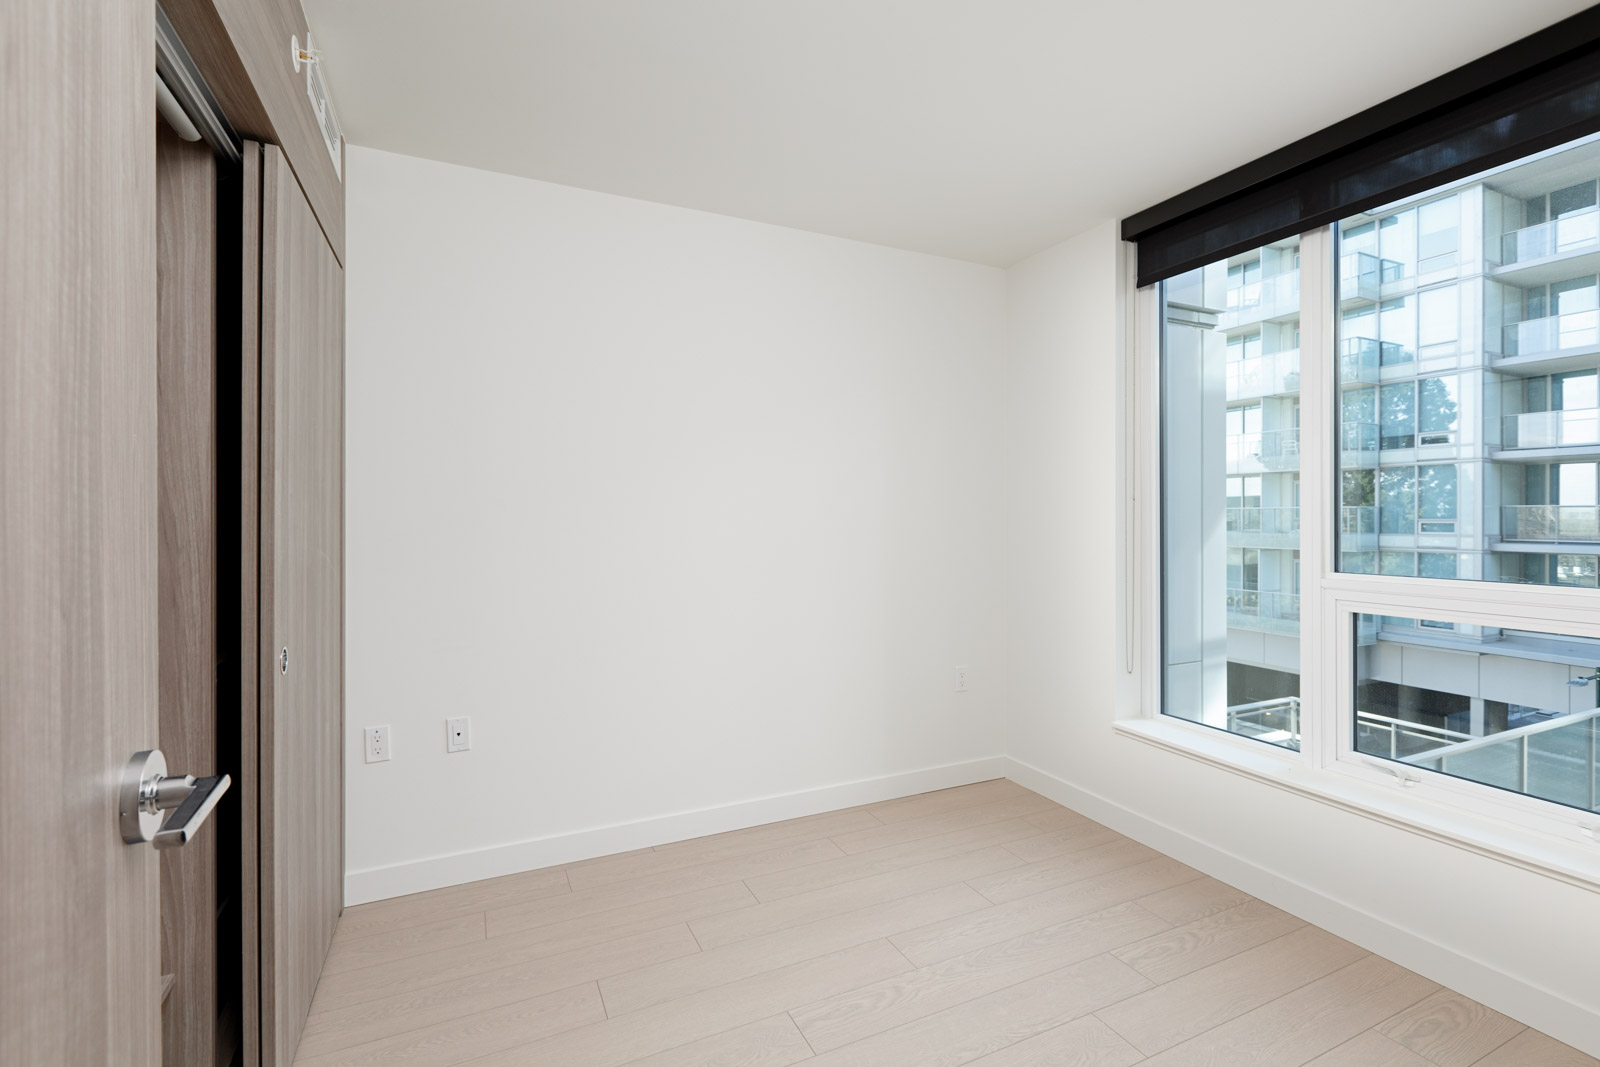 Bedroom with view and ash flooring at Vancouver condo rental.